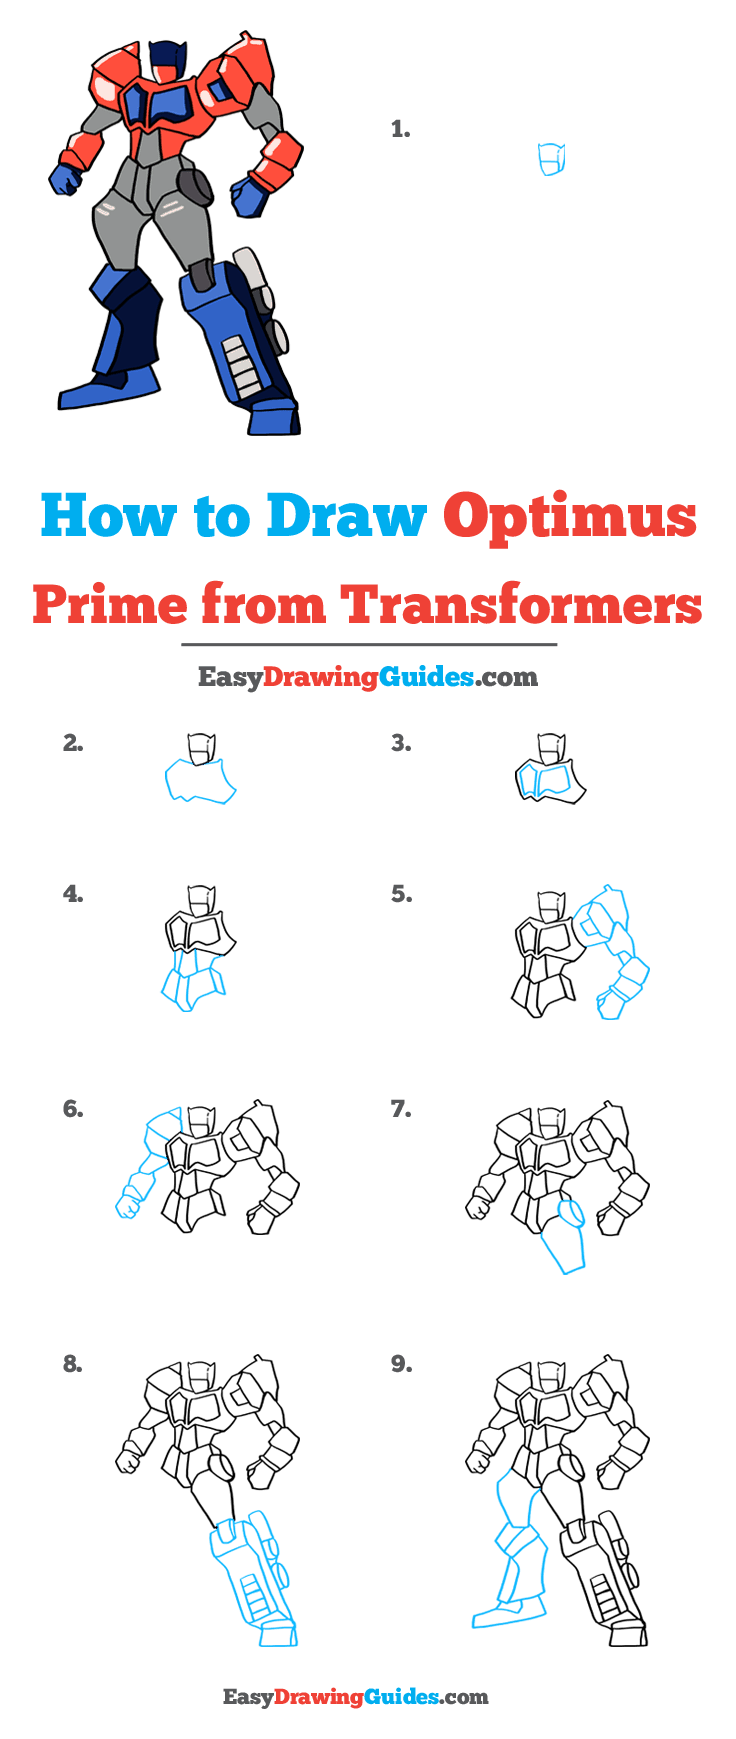 How to Draw Optimus Prime from Transformers Step by Step Tutorial Image